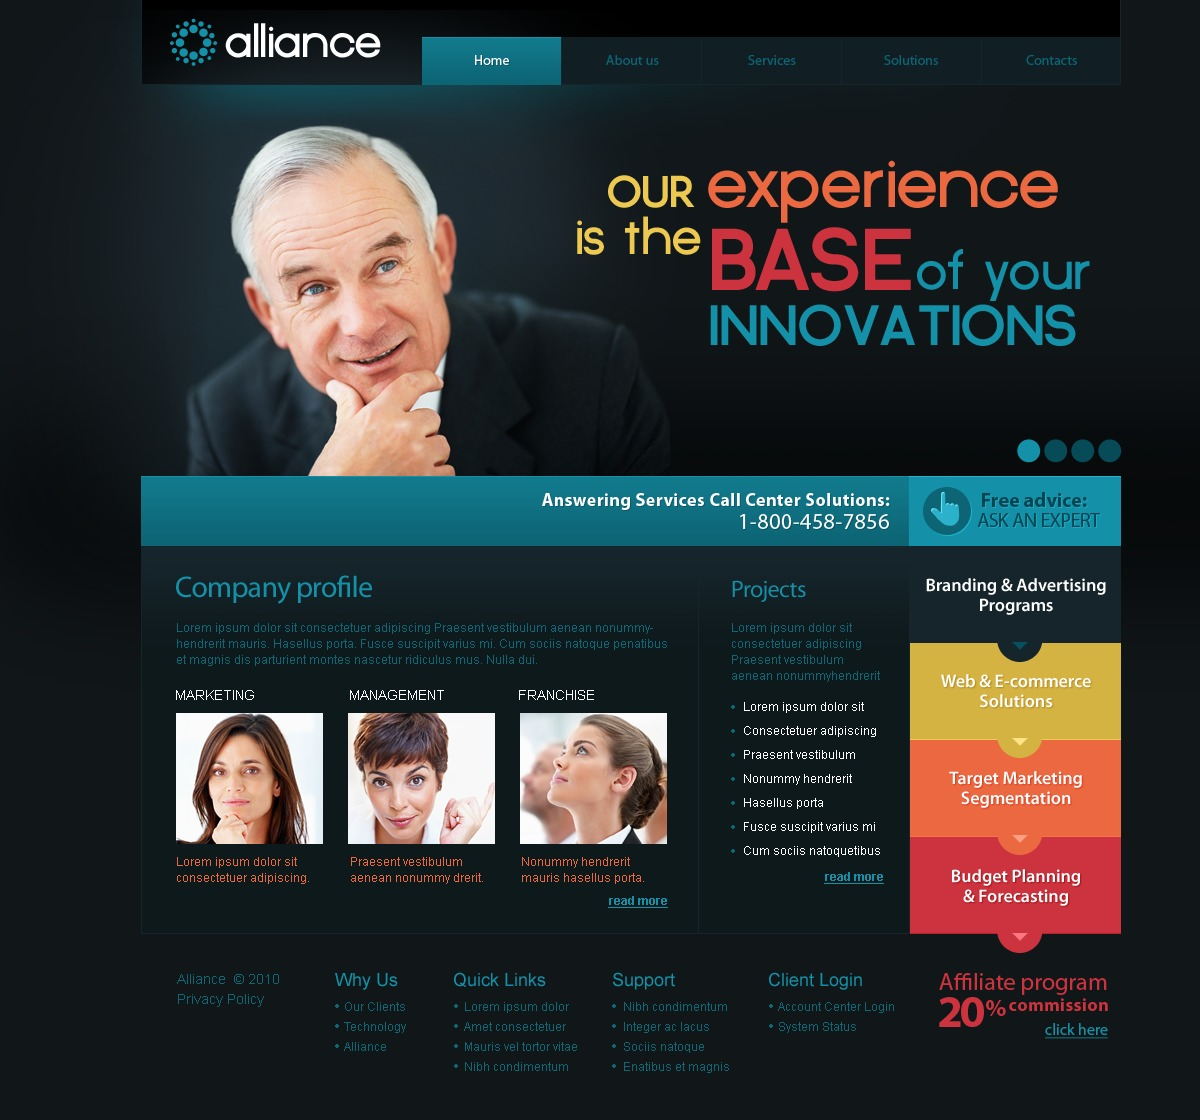 The Alliance Business Company PSD Design 54139, one of the best PSD templates of its kind (business, flash 8, wide), also known as alliance business company PSD template, corporate solutions PSD template, innovations PSD template, contacts PSD template, service PSD template, support PSD template, information dealer PSD template, stocks PSD template, team PSD template, success PSD template, money PSD template, marketing PSD template, director PSD template, manager PSD template, analytics PSD template, planning PSD template, limited PSD template, office PSD template, sales and related with alliance business company, corporate solutions, innovations, contacts, service, support, information dealer, stocks, team, success, money, marketing, director, manager, analytics, planning, limited, office, sales, etc.